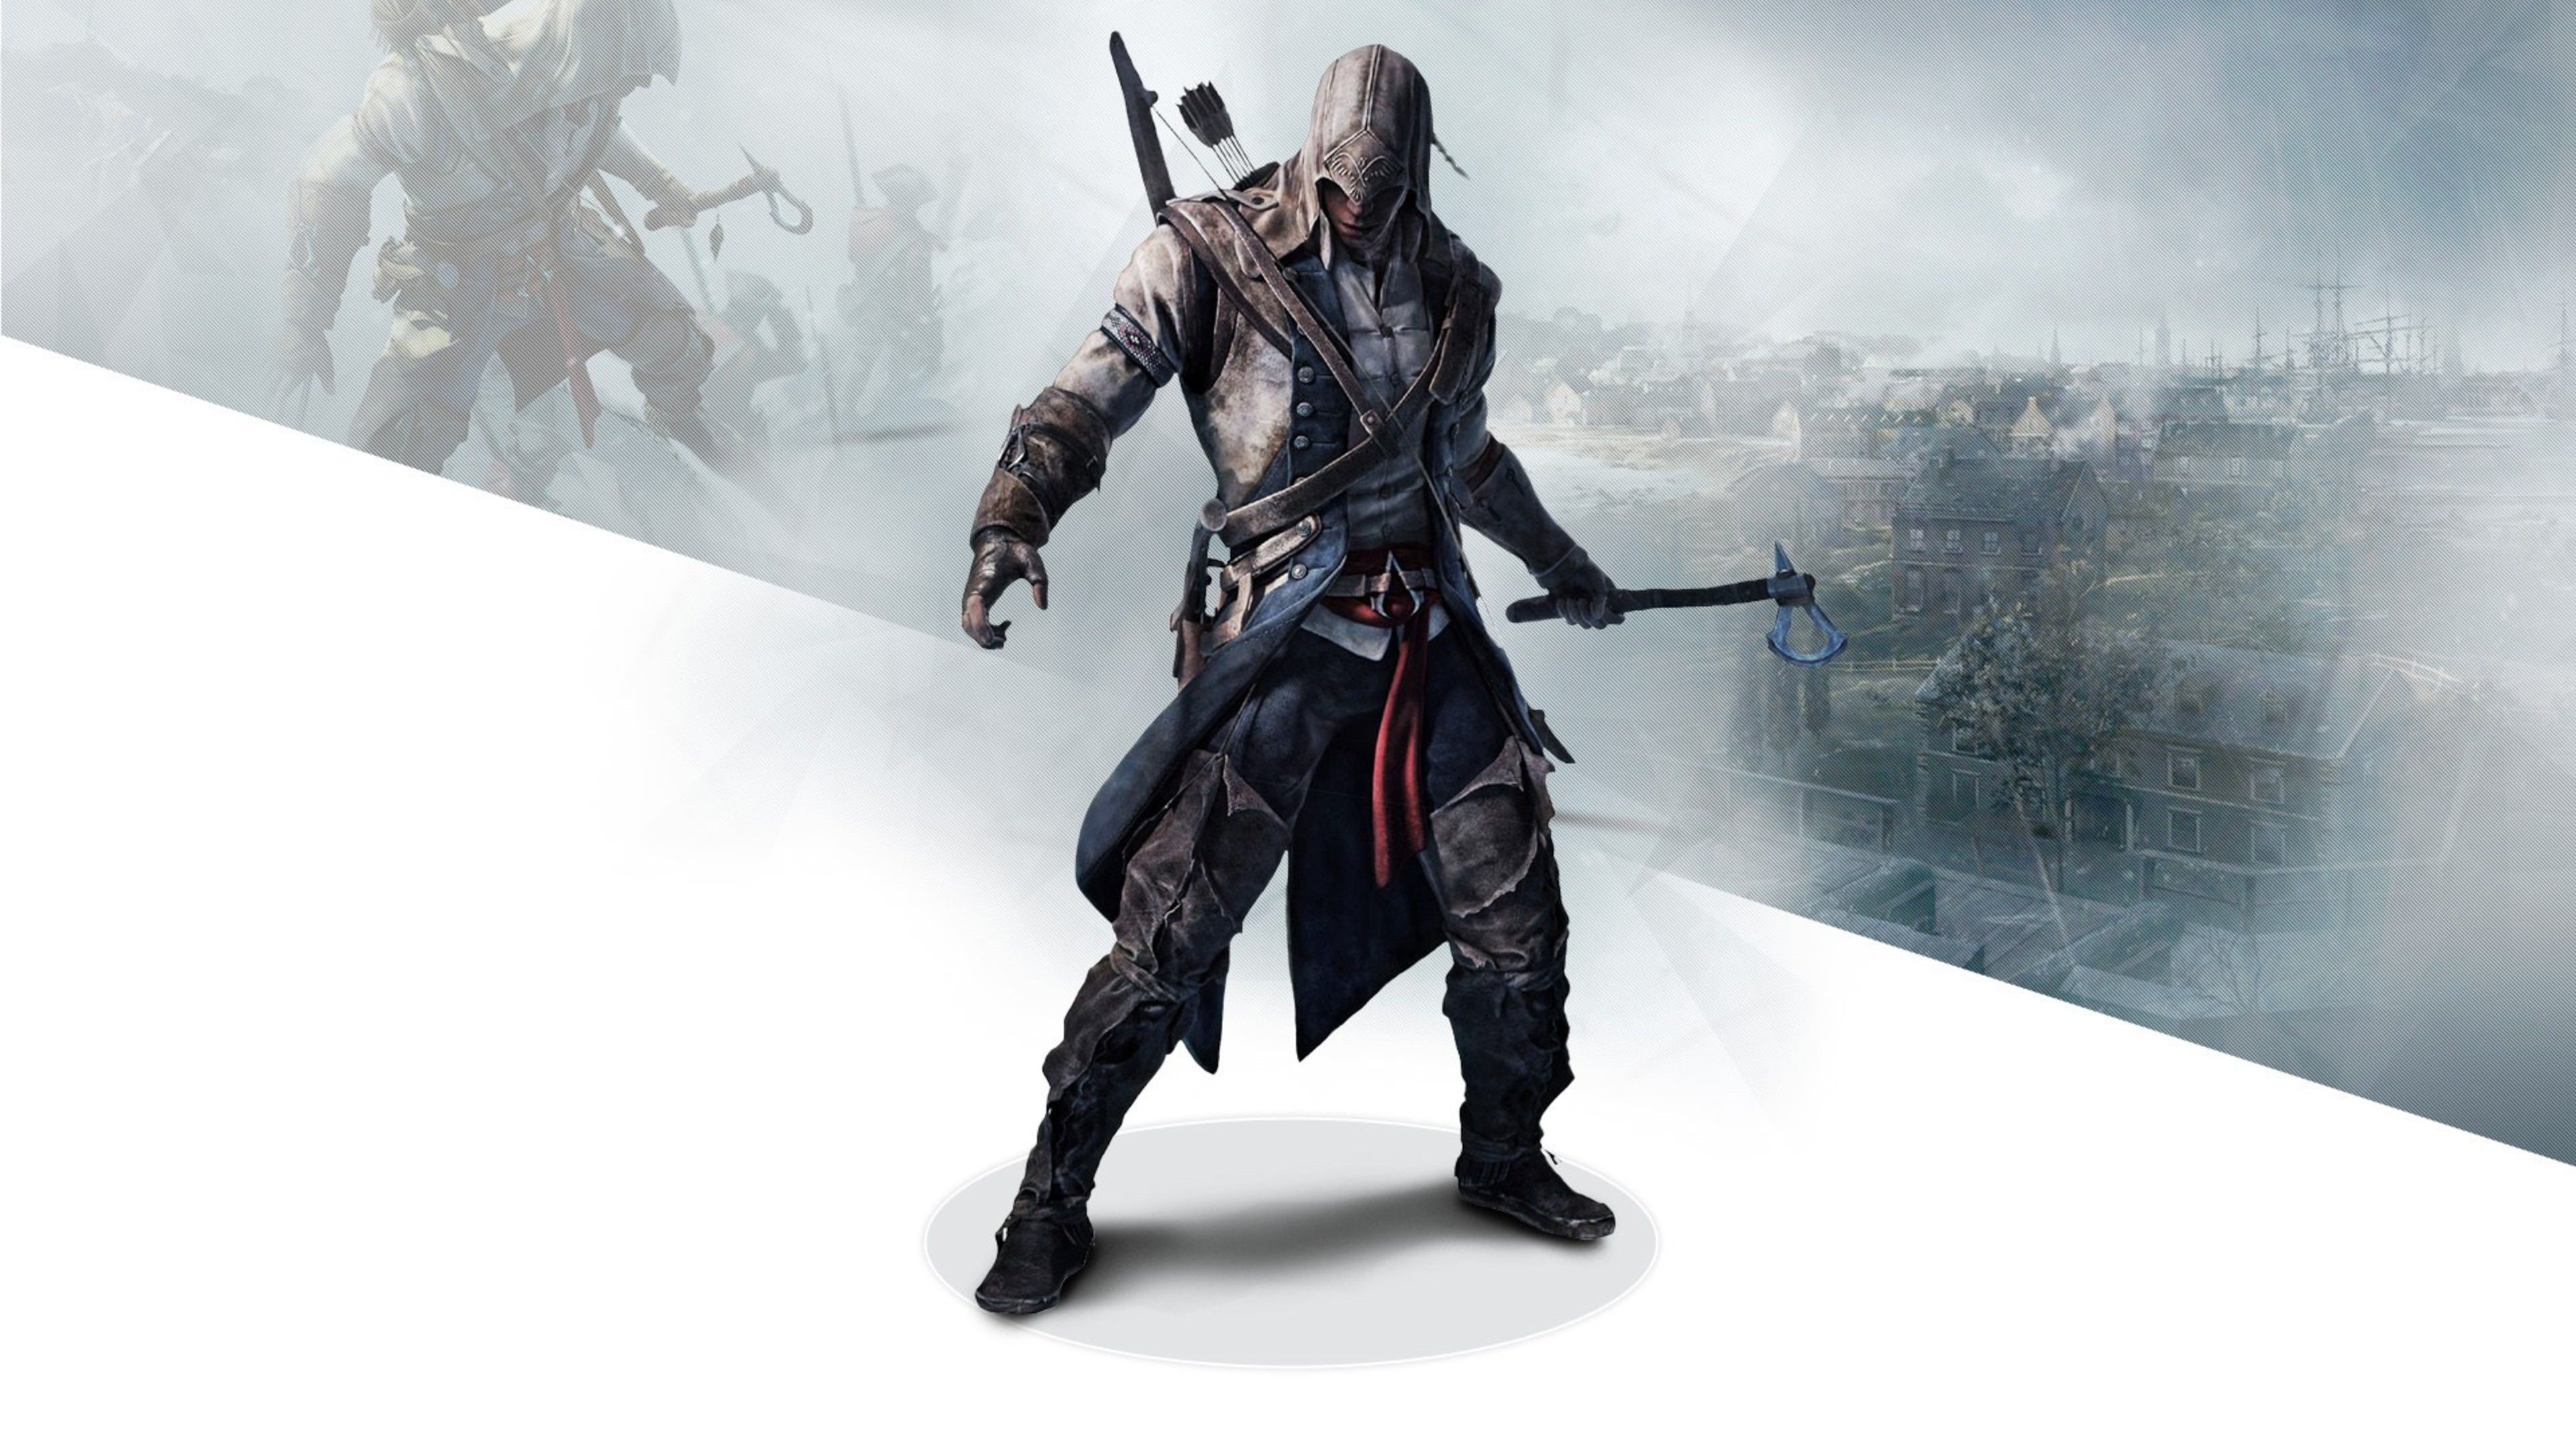 Assassins Creed Altairs Chronicles, HD Games, 4k Wallpapers, Images, Backgrounds, Photos And